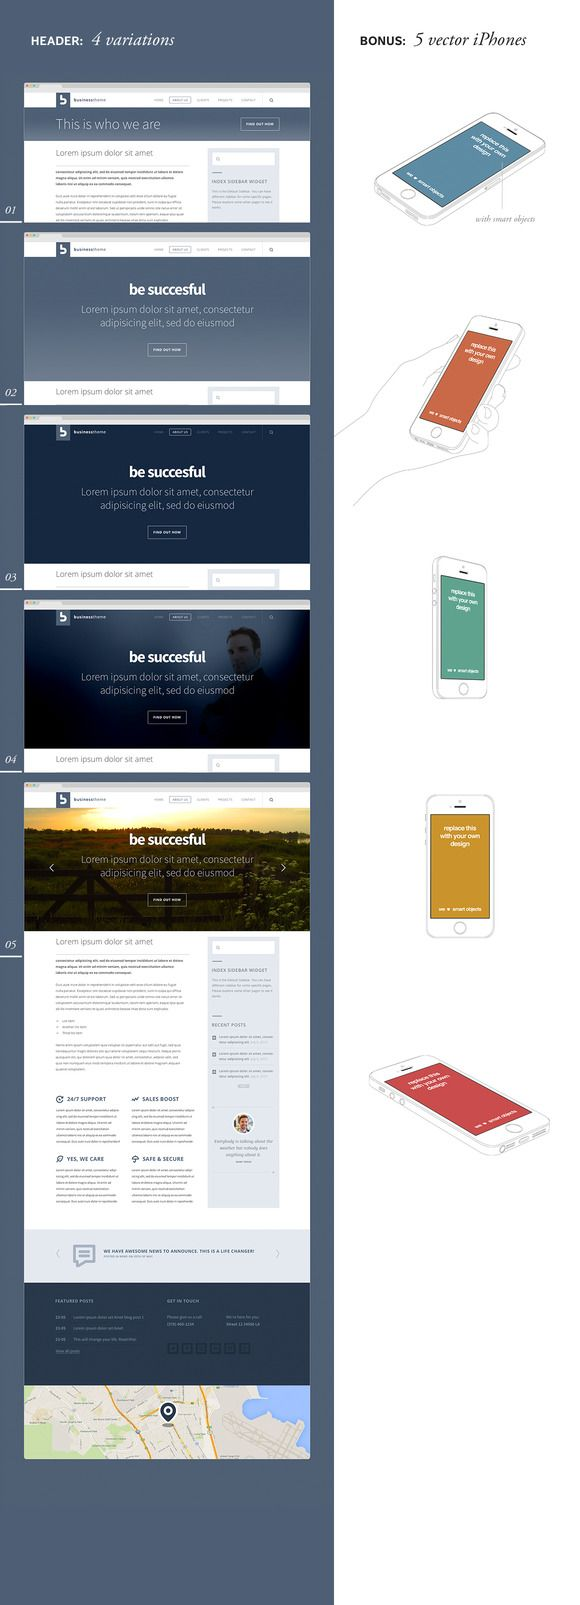 "Rocket App UI Kit This is an impressive collection of mobile app mockups, designed around this fictional ""Rocket App"". It's made up of several different interface screens, including: — News feed — Follow/following screen — Login screen — Home screen — Logo mockups #mockupiphone, #mockupsiphone #mockups #iphone5mockups, #iphone5psd #iphone5psdmockups"